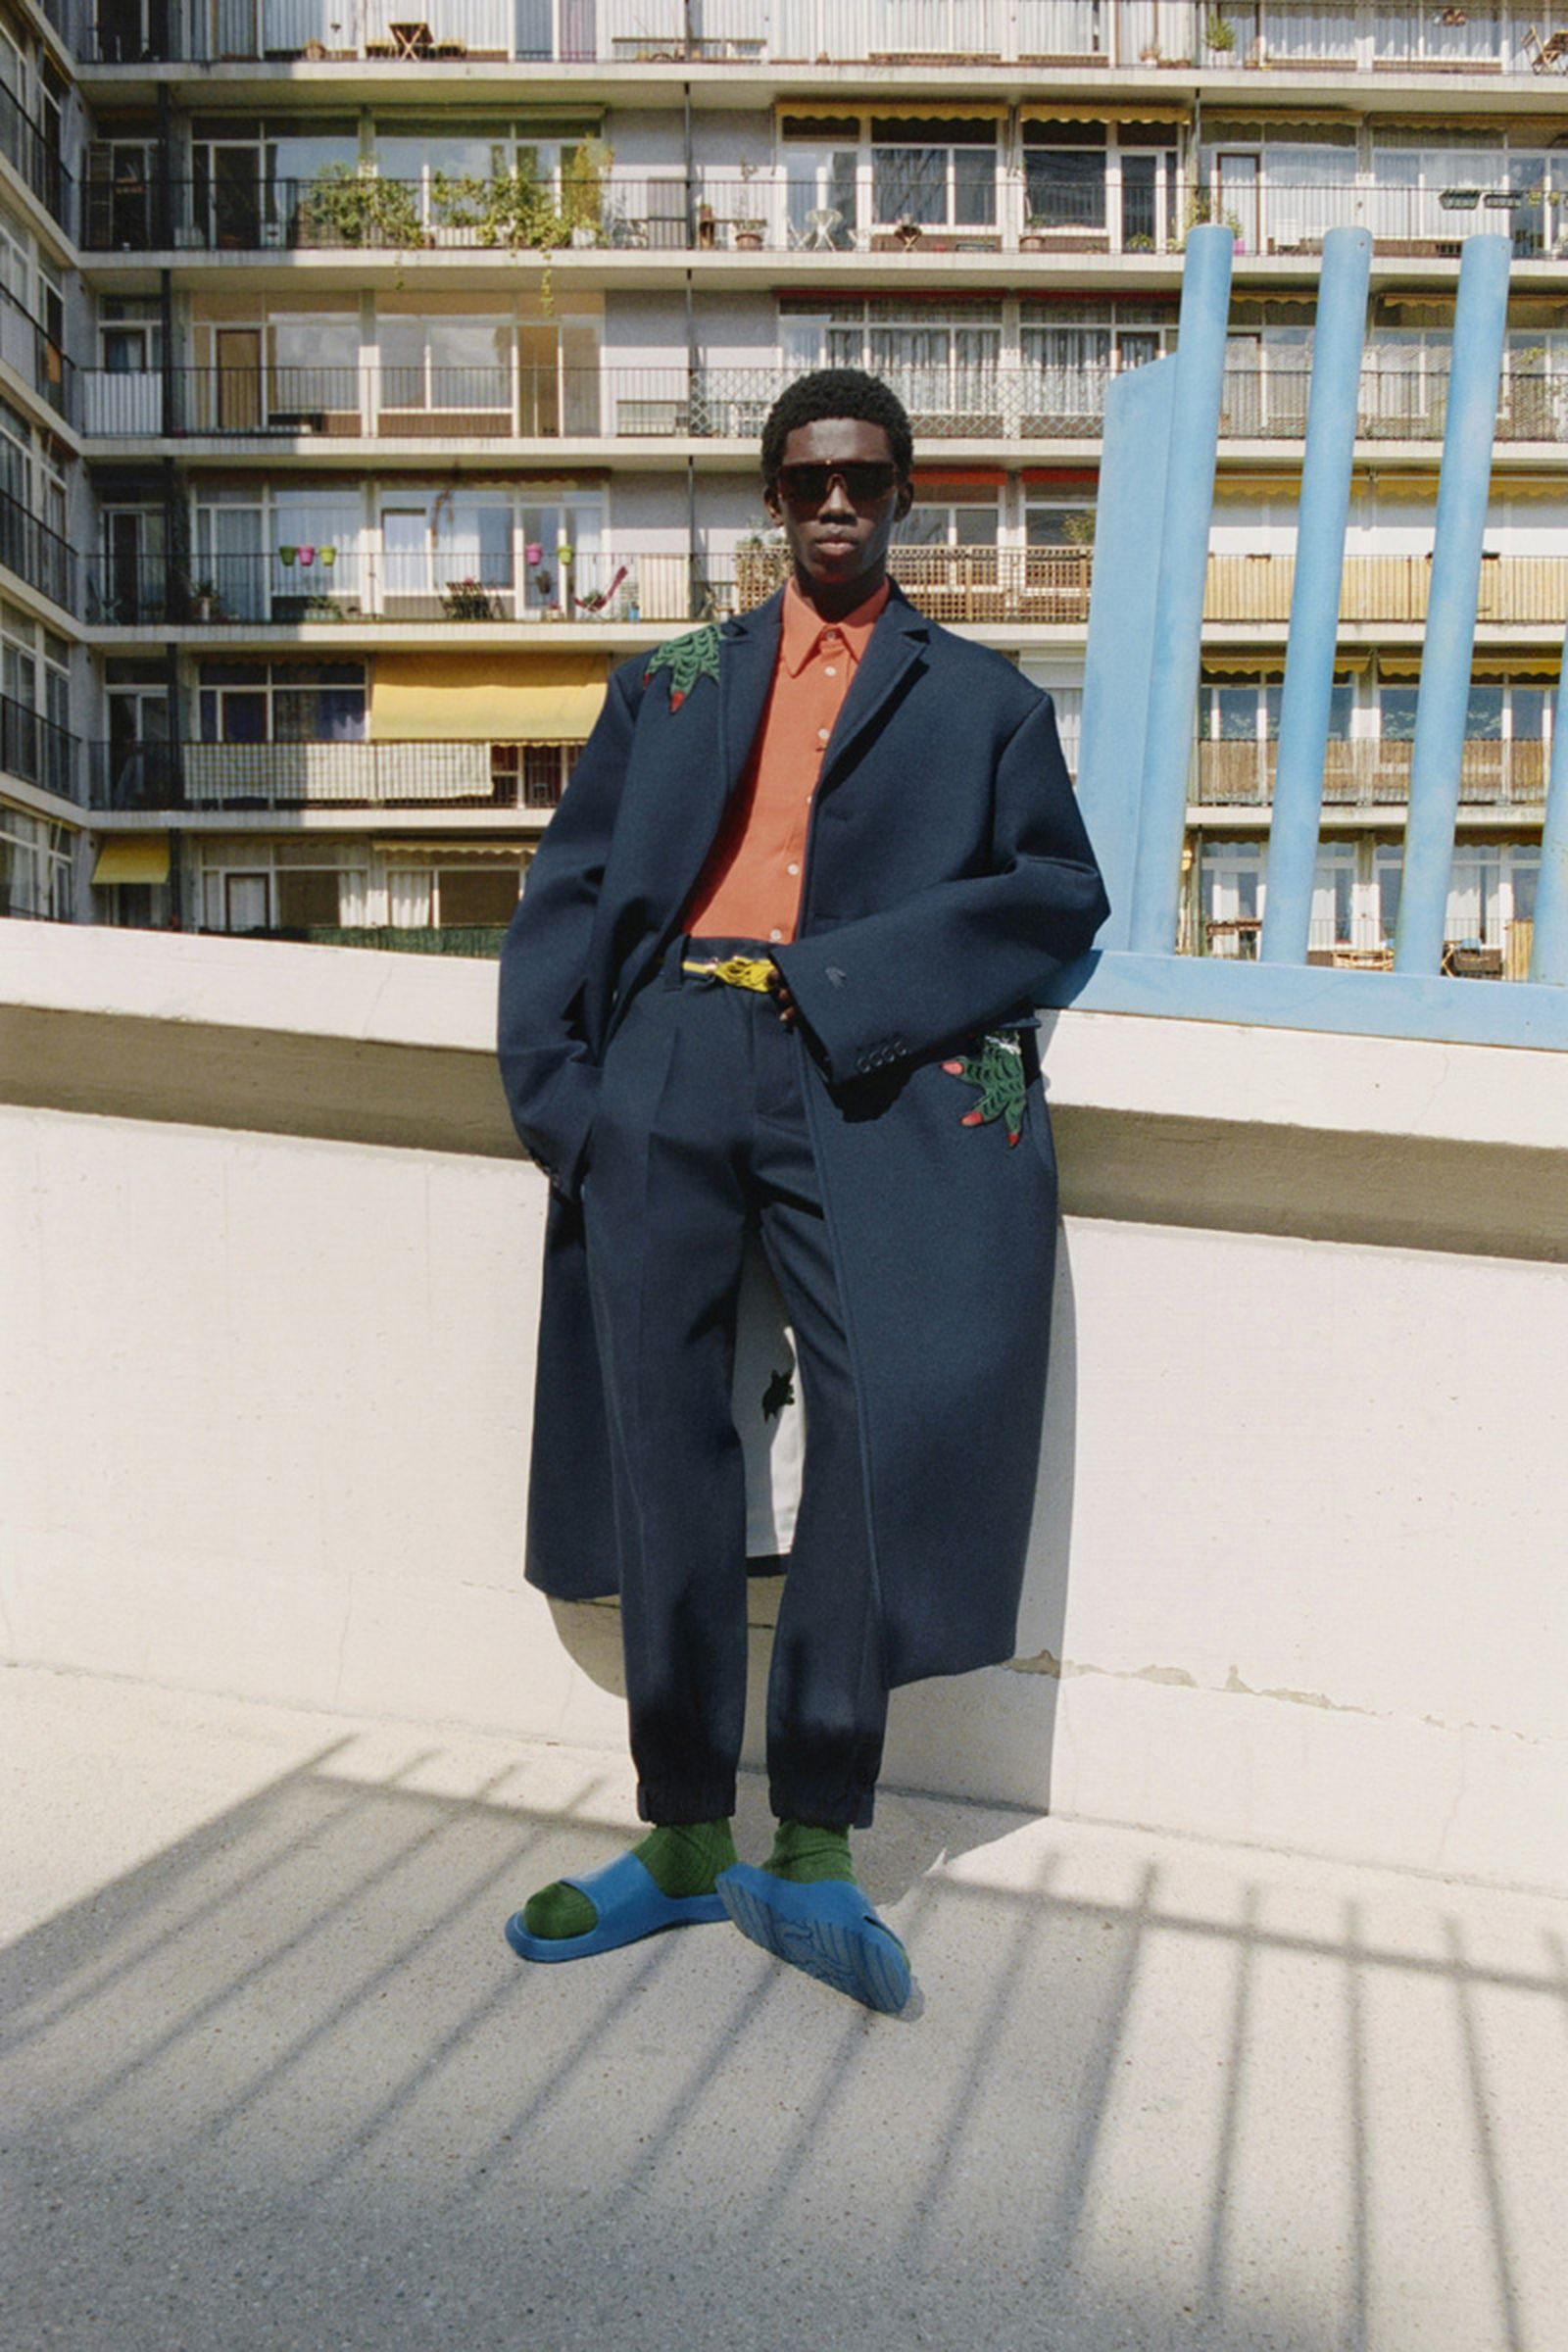 lacoste-fall-winter-2021-collection-lookbook-4